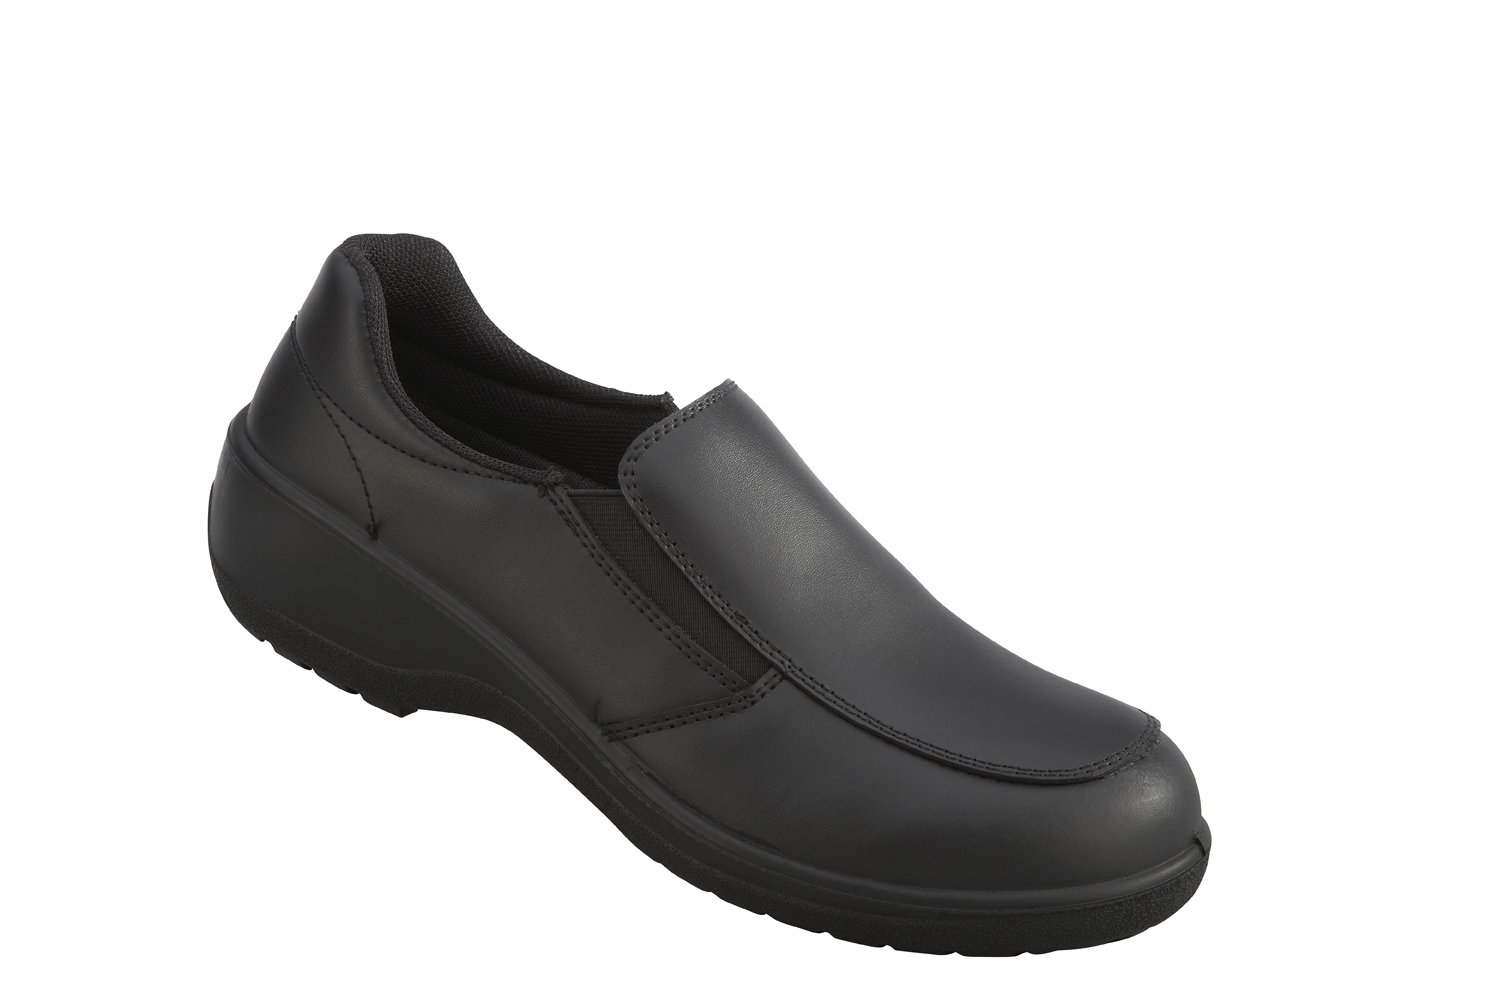 Rock Fall VX530 Topaz 5 Safety Shoe Black